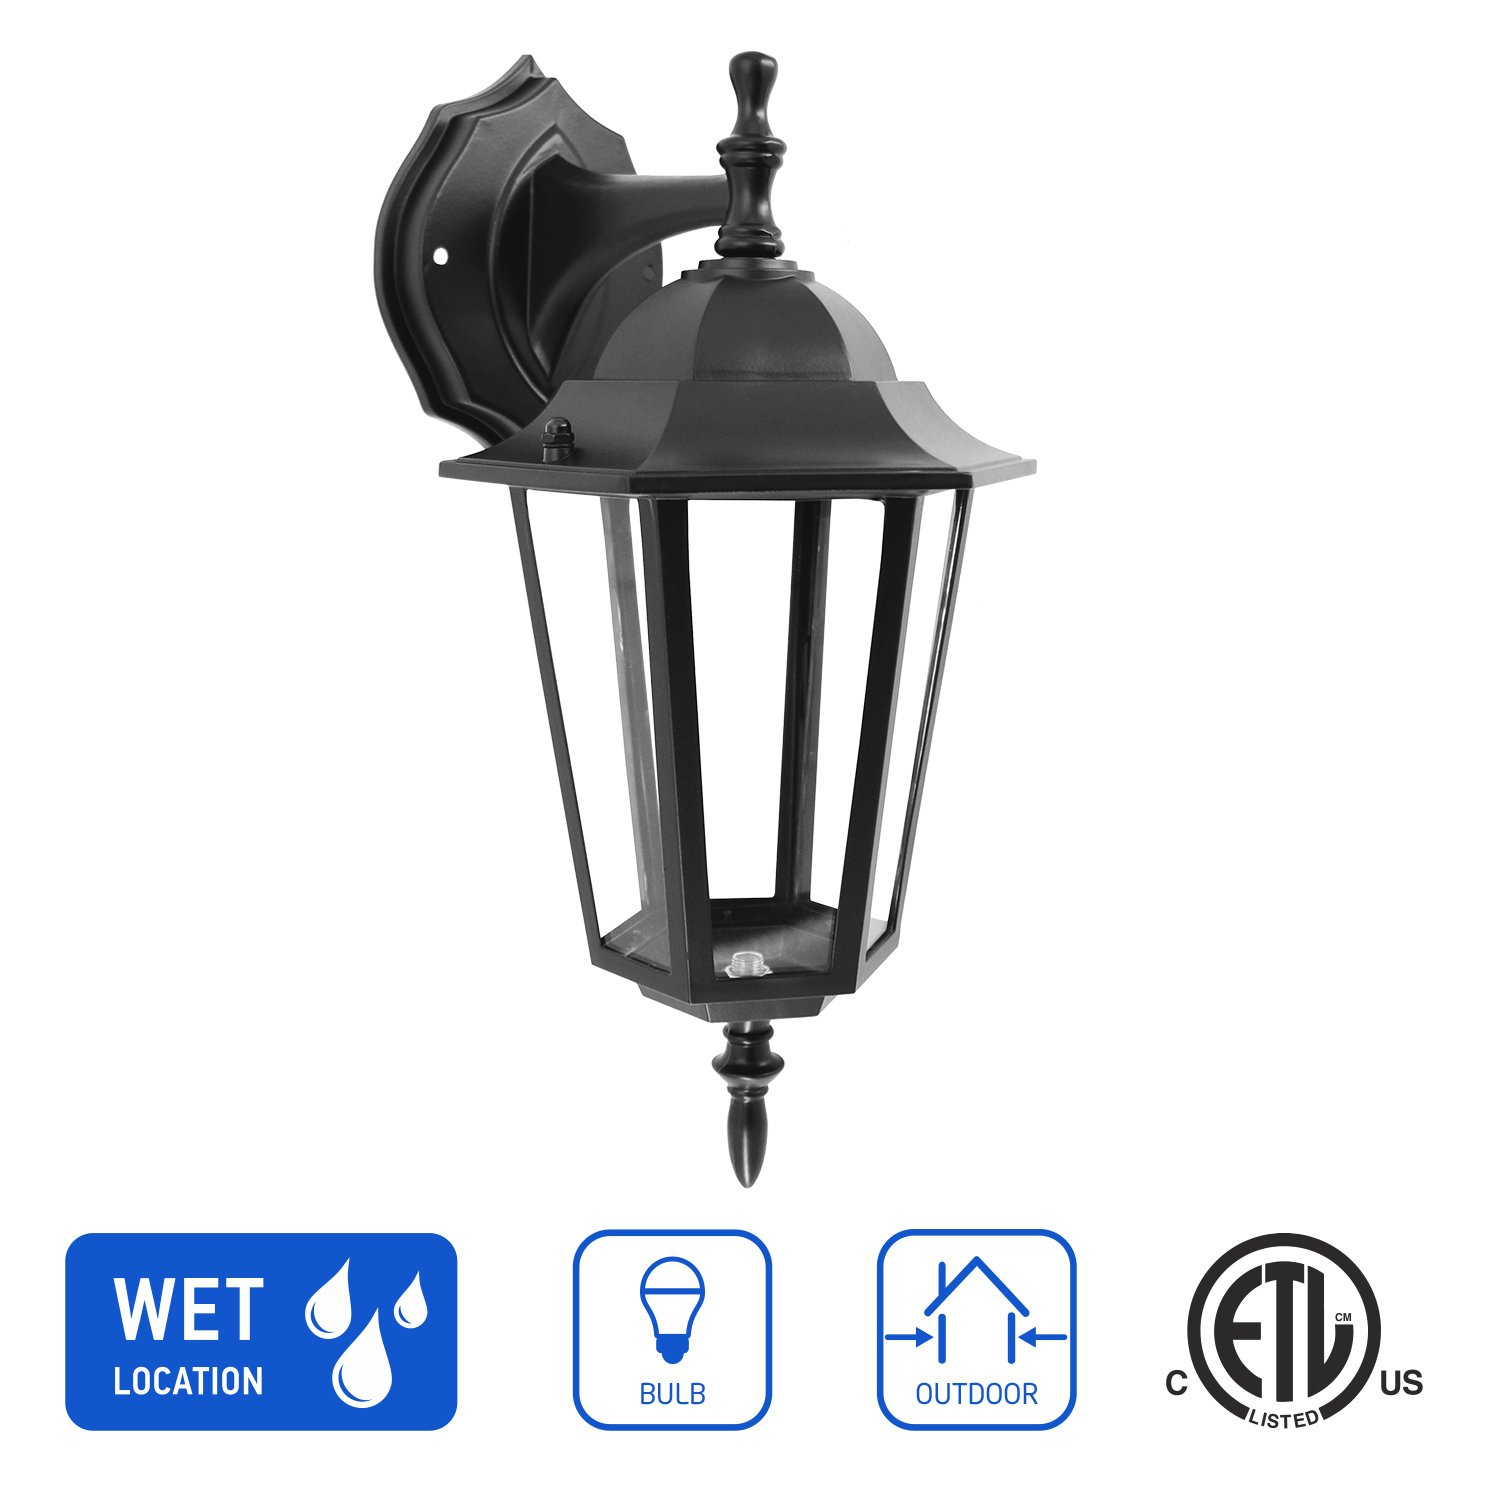 in Home 1-Light Outdoor Wall Mount Lantern Downward Fixture L01 Series Traditional Design Black Finish, Clear Glass Shade, ETL Listed